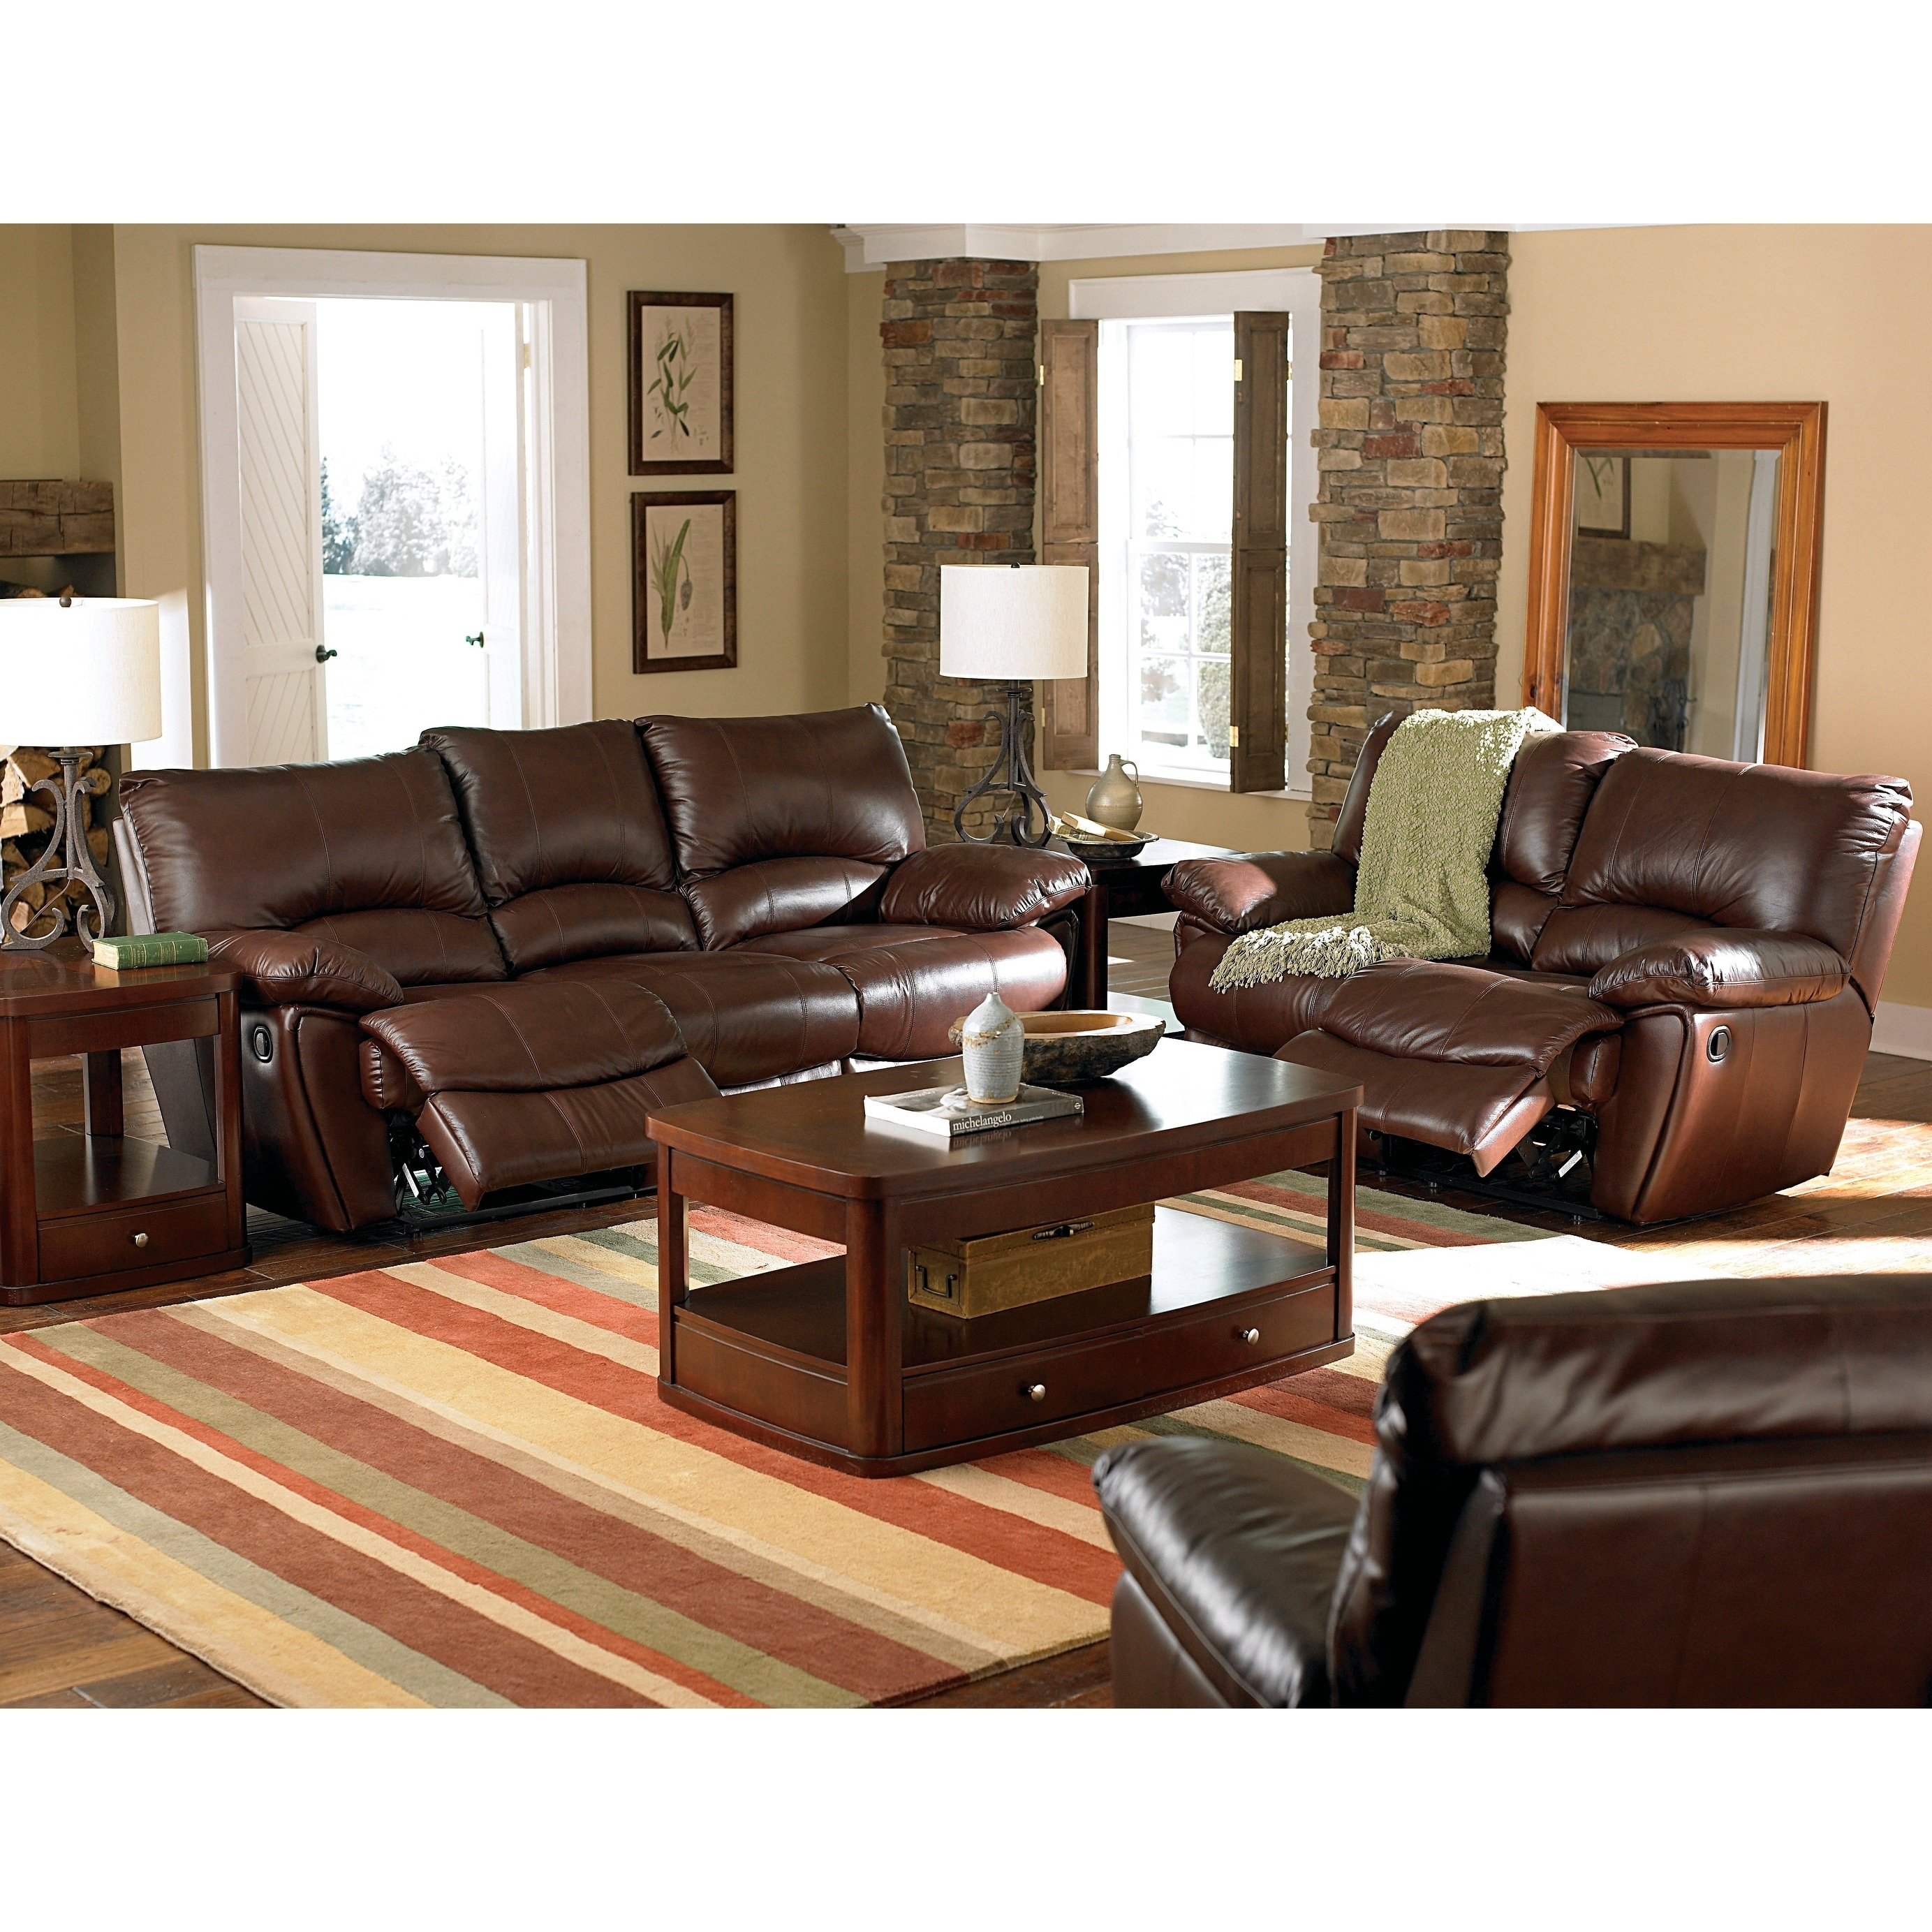 Shop clifford dark brown 2 piece motion reclining living room set on sale free shipping today overstock 21862571